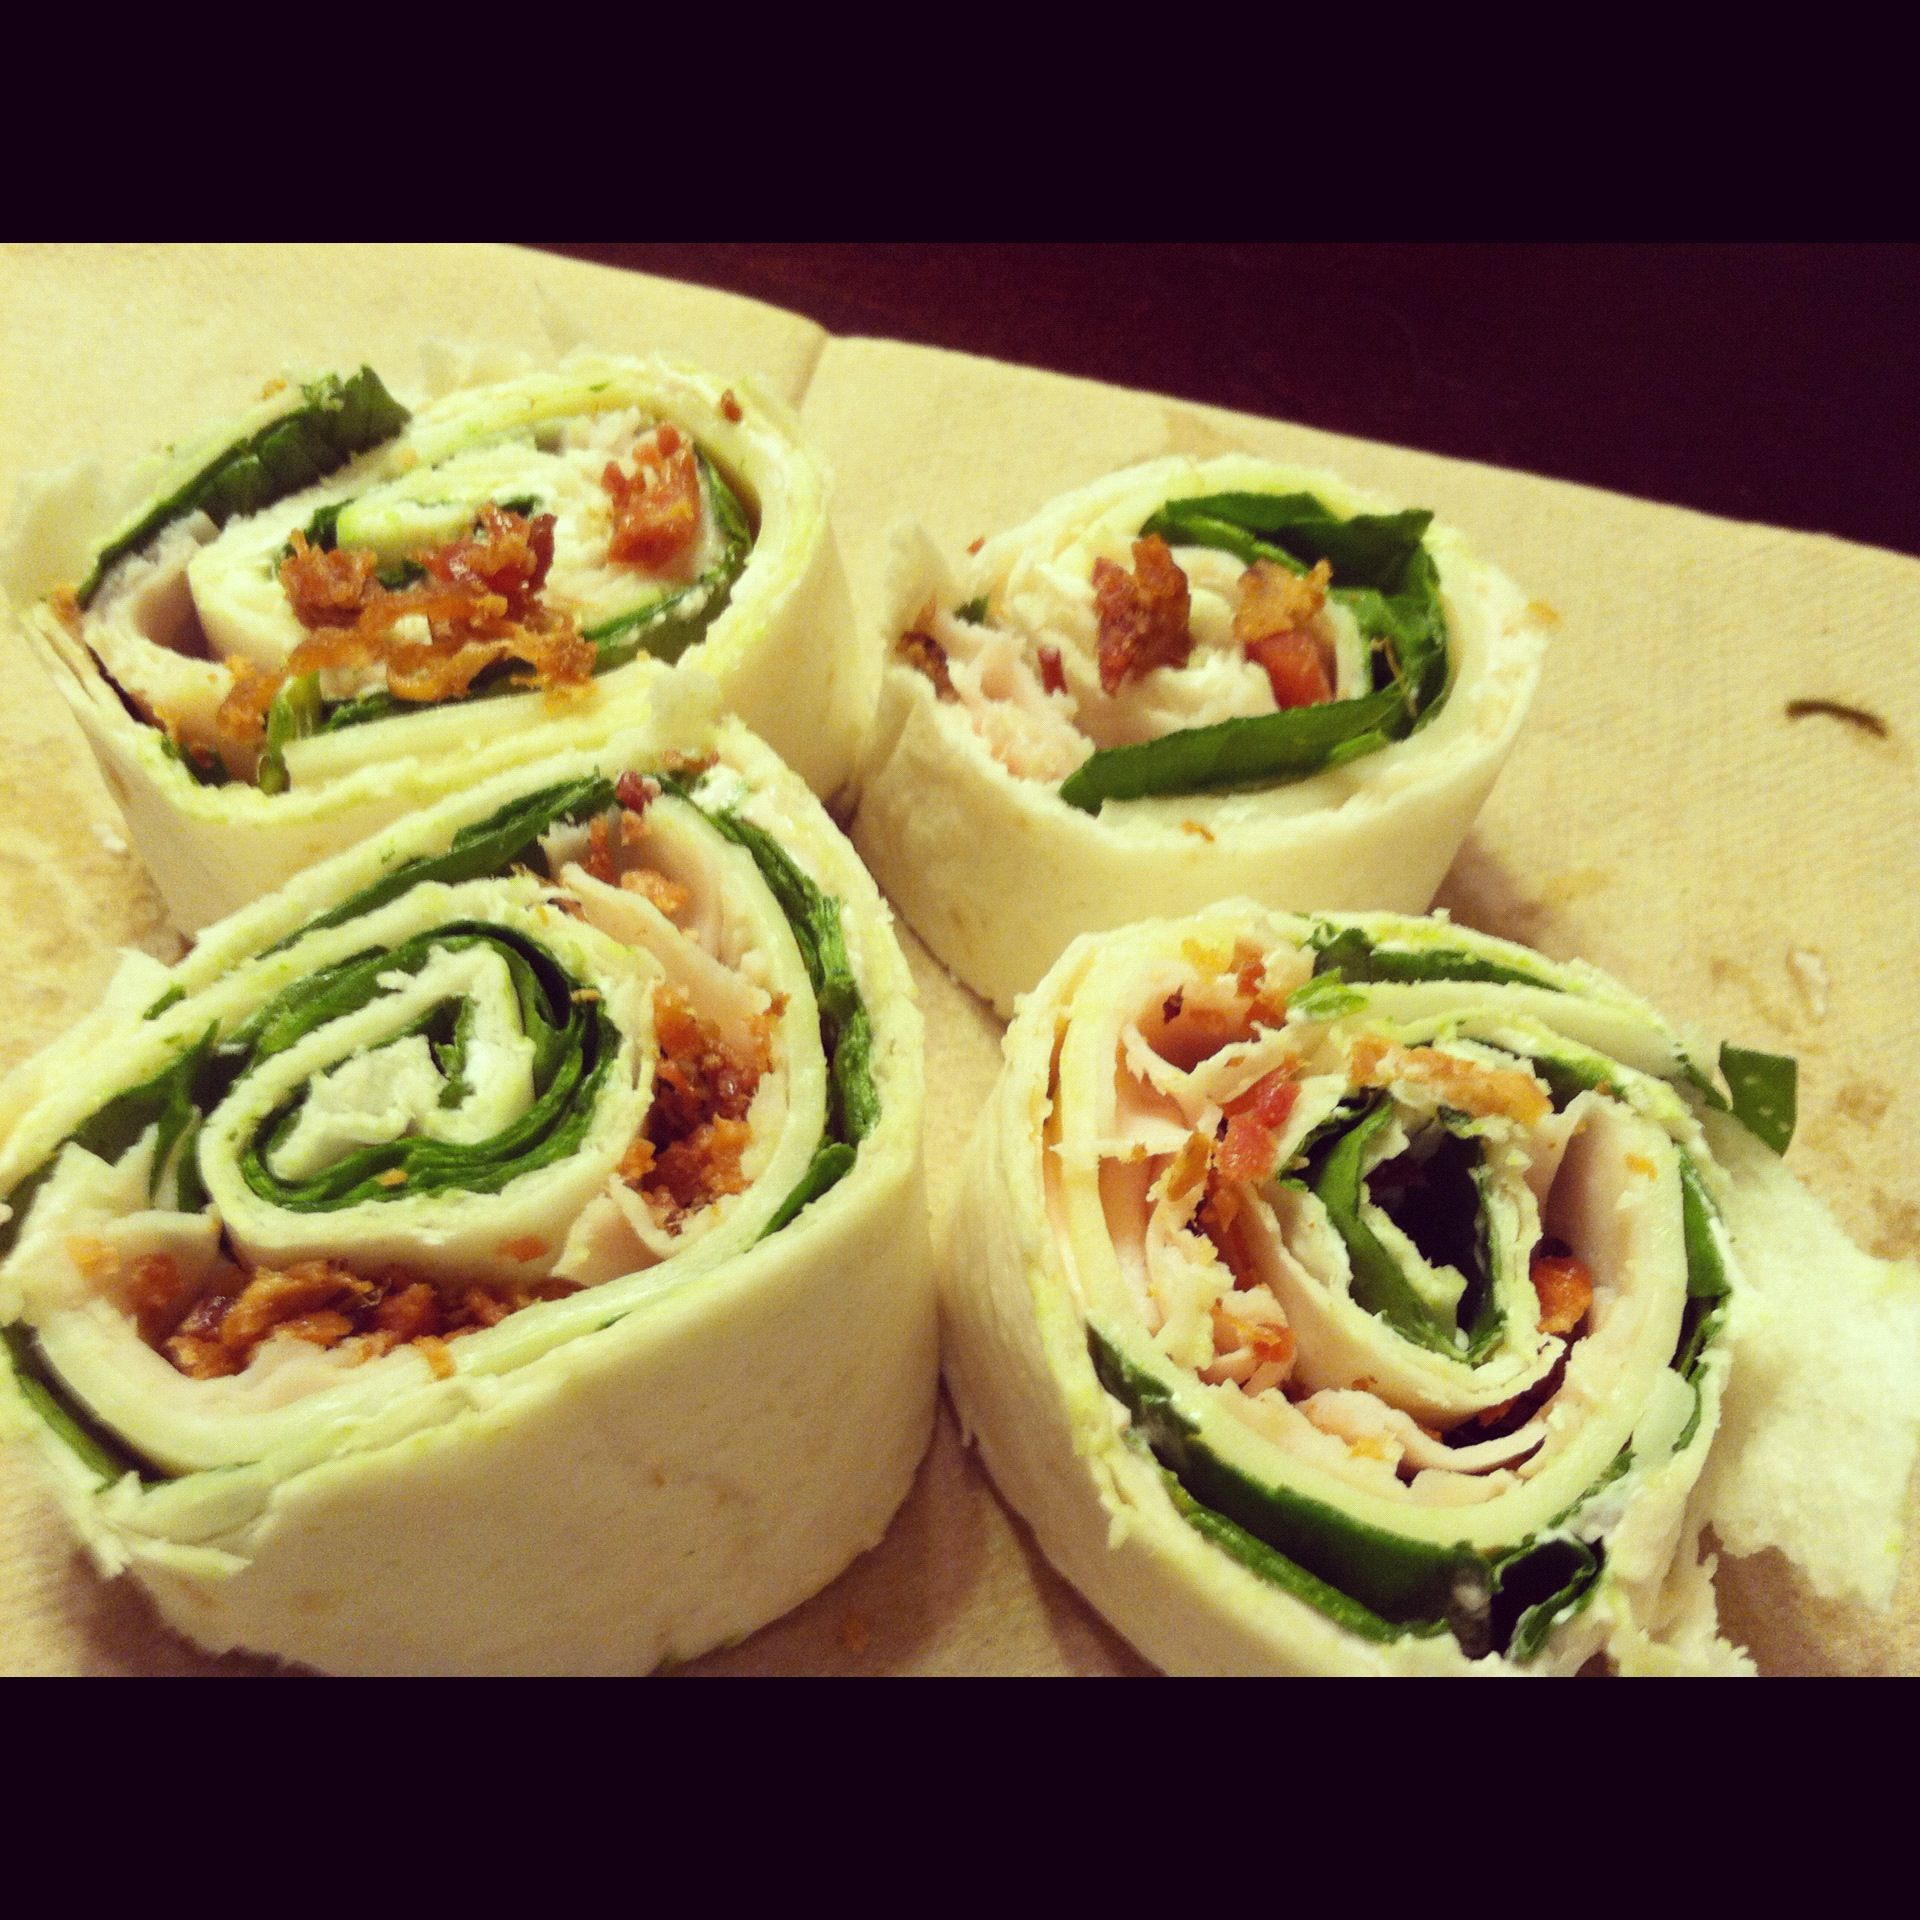 Moms pinwheel sandwiches | partys and celebrations | Pinterest